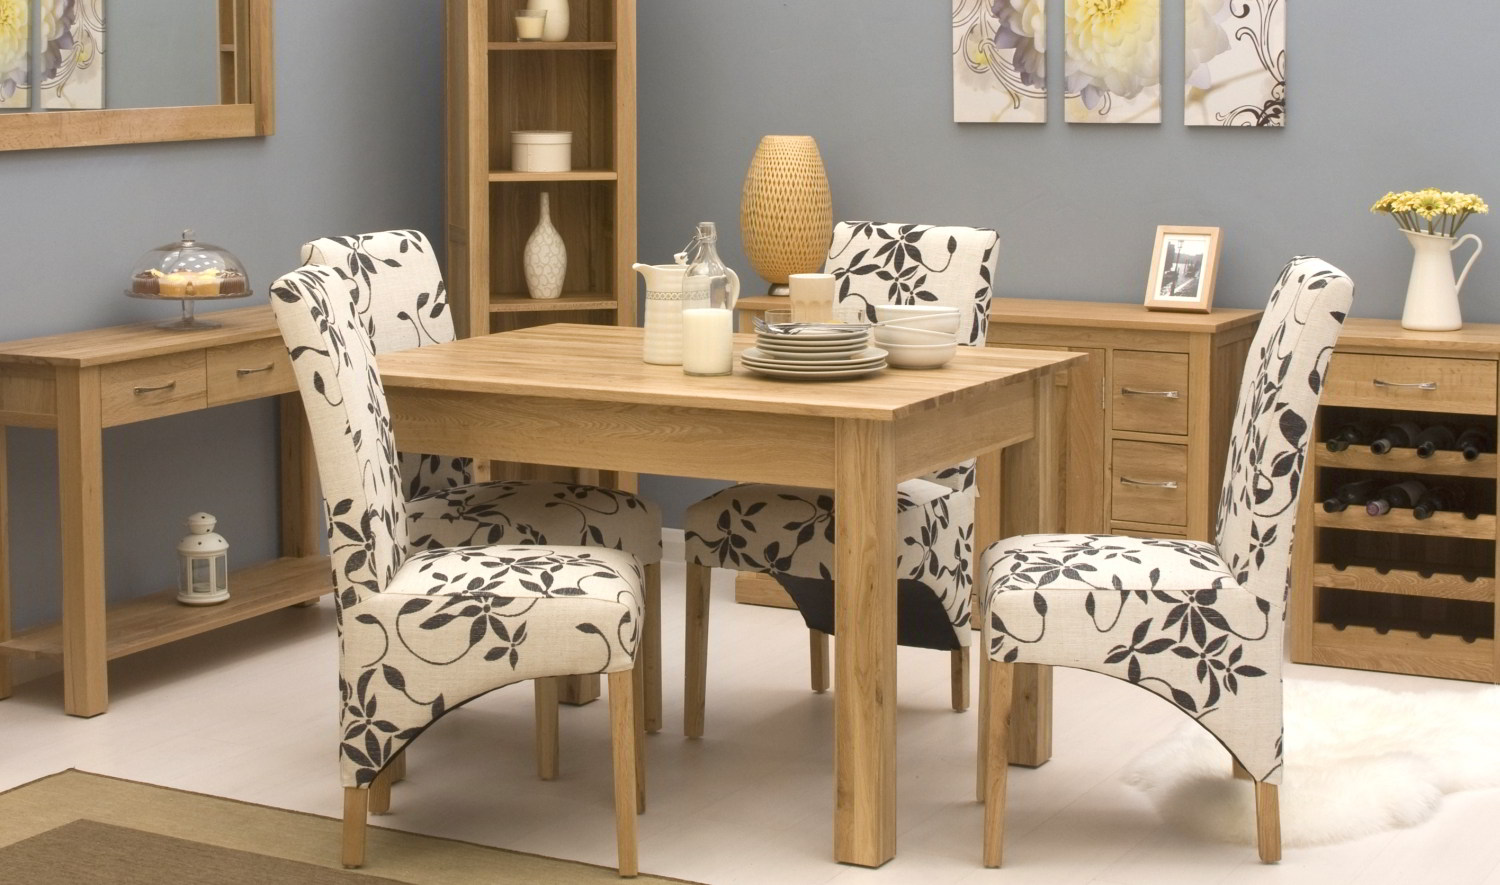 mobel solid oak console. Conran Solid Oak Modern Furniture Small Four Seater Dining Table Mobel Console